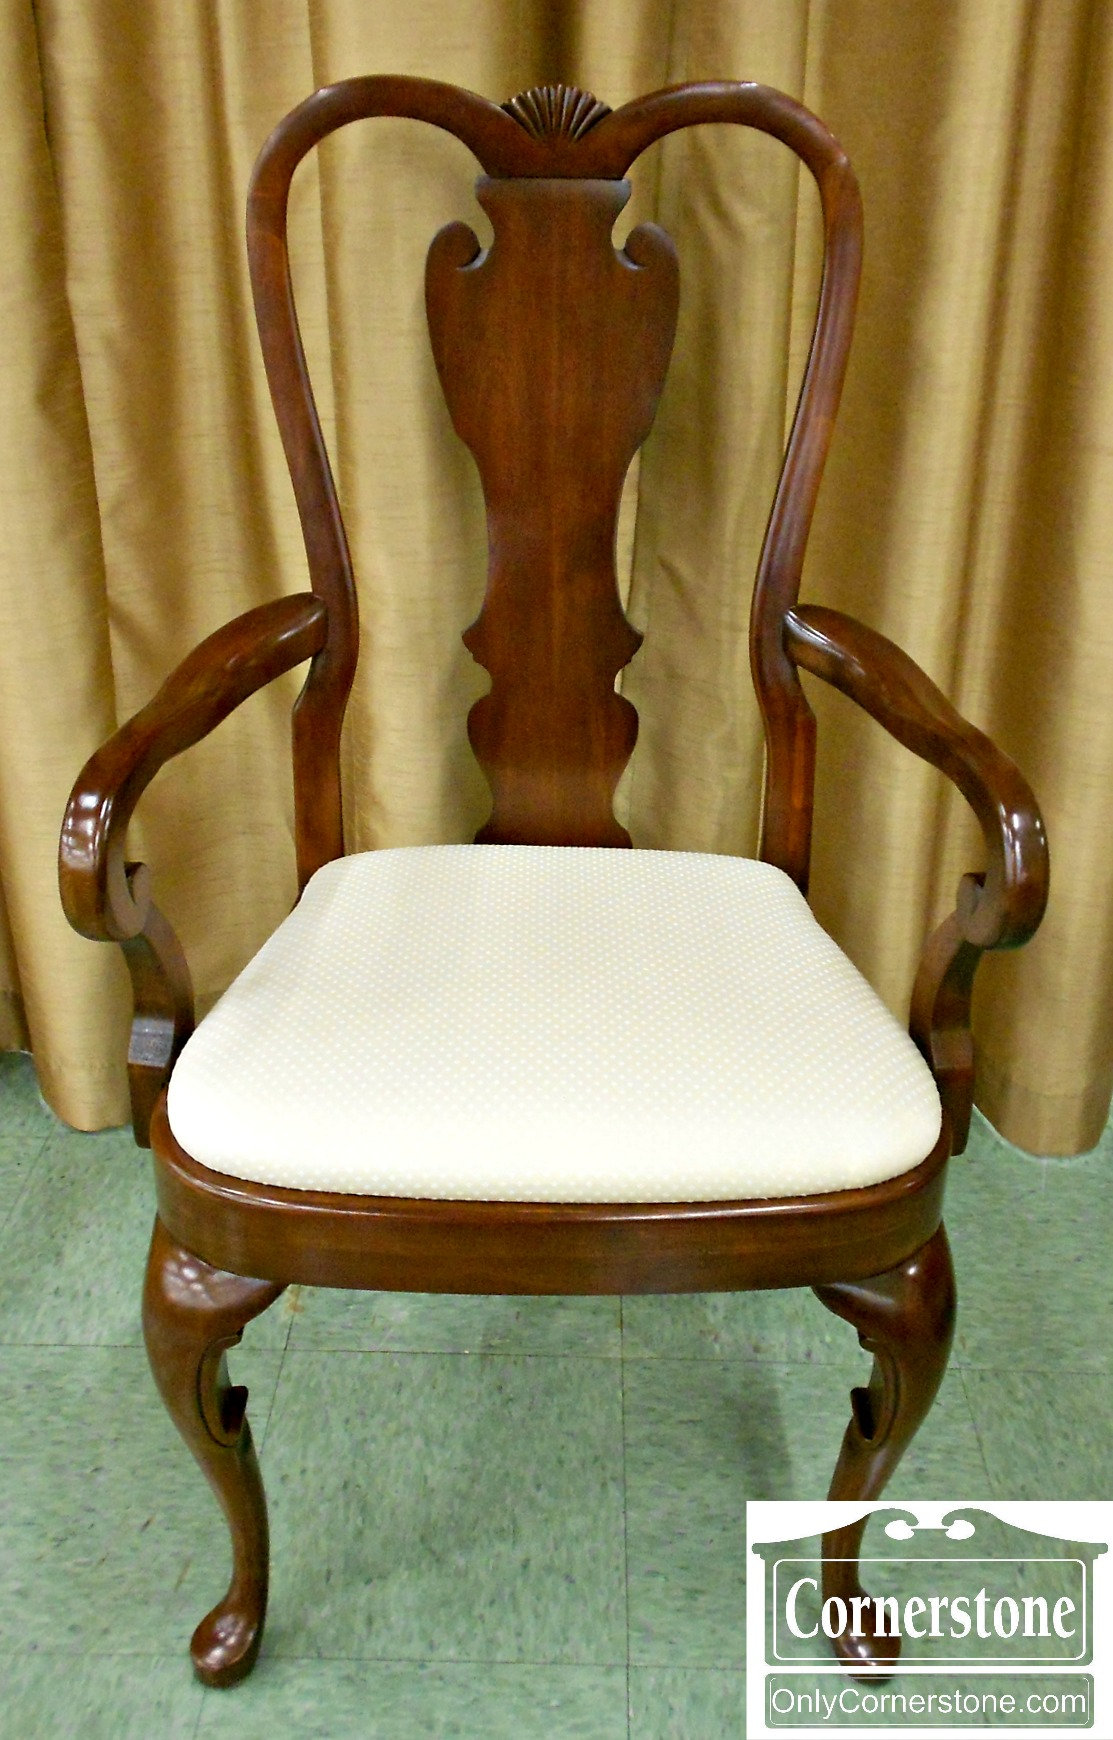 5208-1023 Set of 6 PA House Queen Anne Dining Chairs